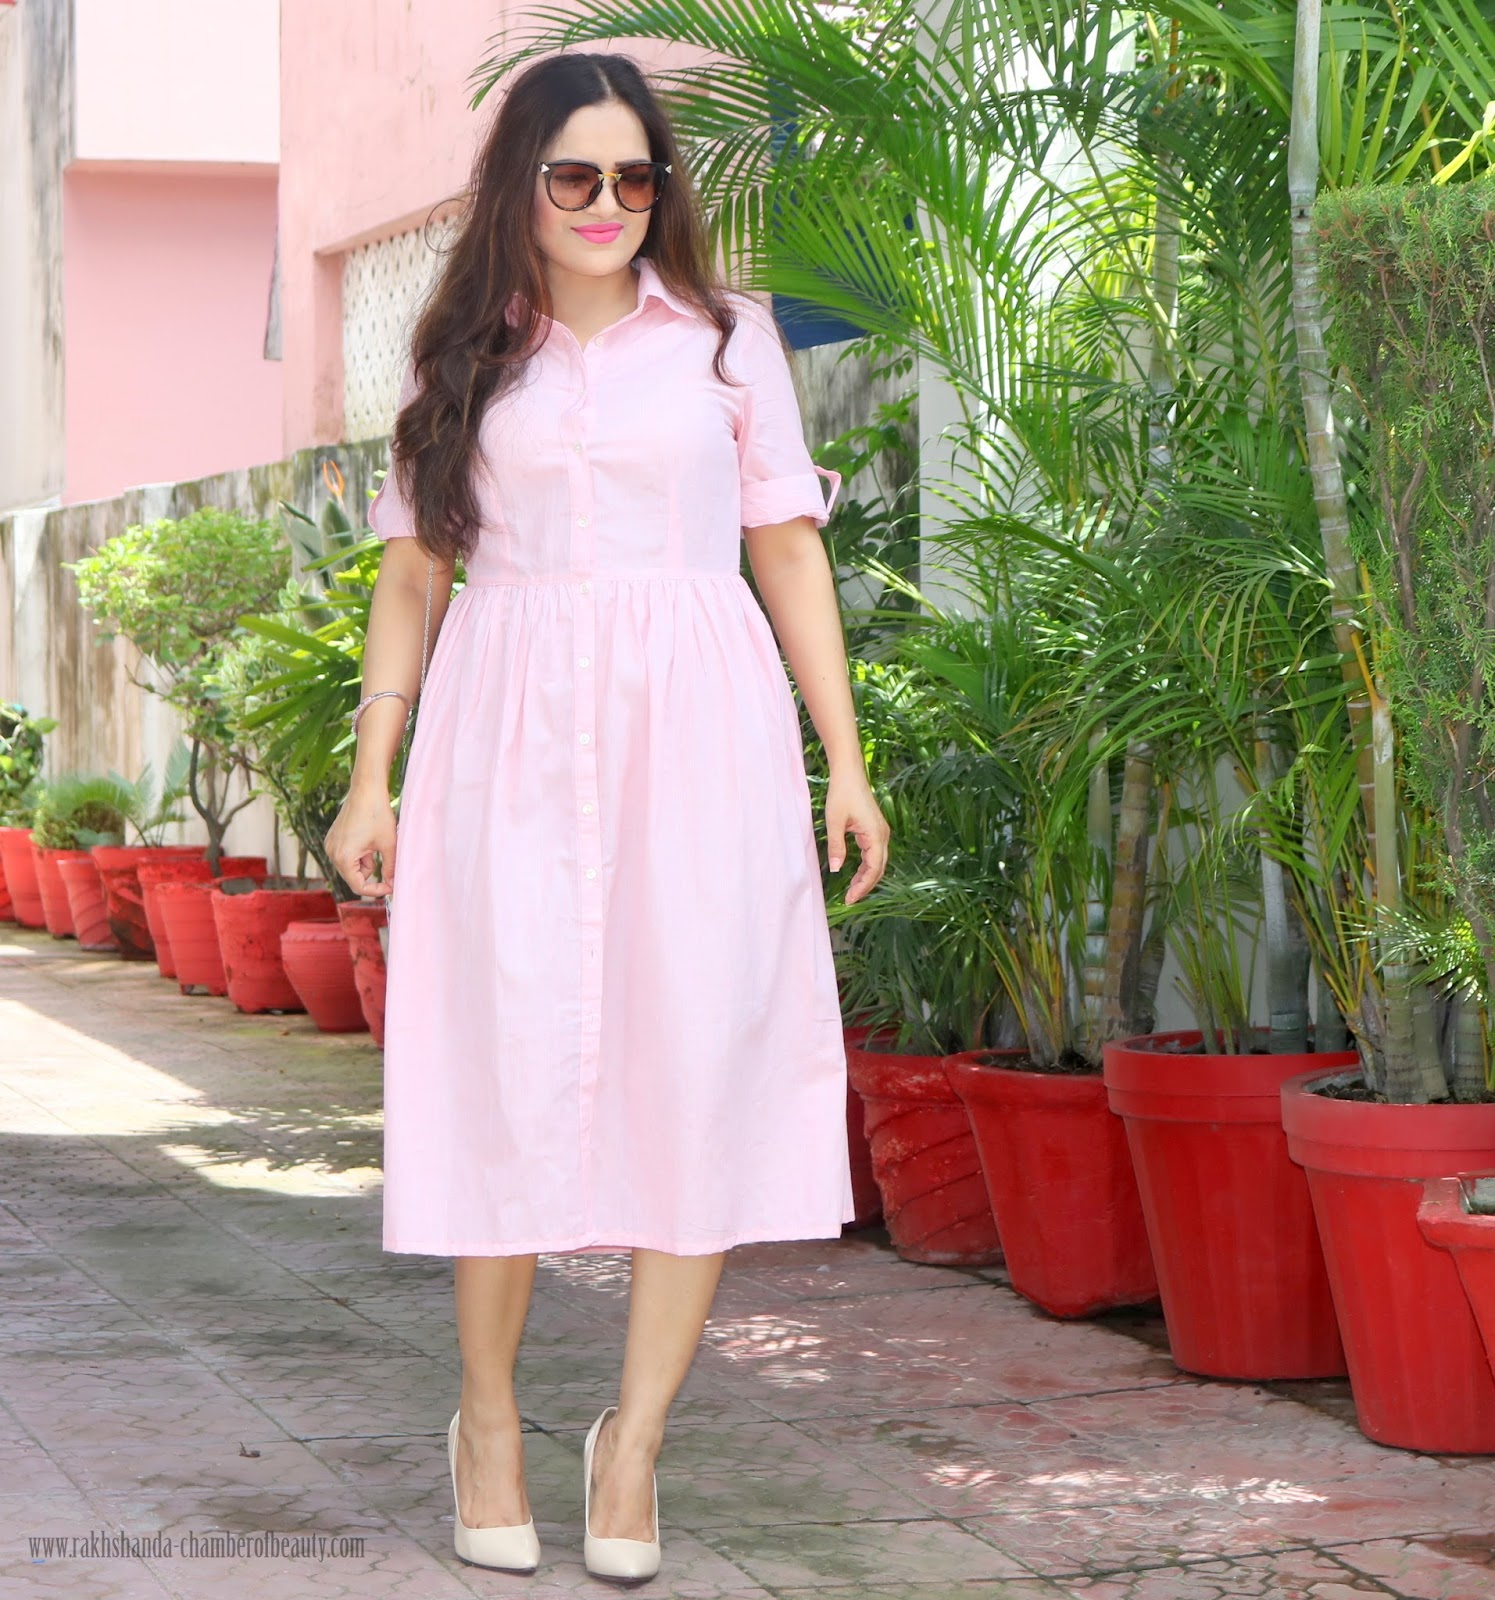 Indian fashion blogger, Pink shirt dress, outfit of the day, dress, How to style a shirt dress, stalkbuylove, Styling a shirt dress,